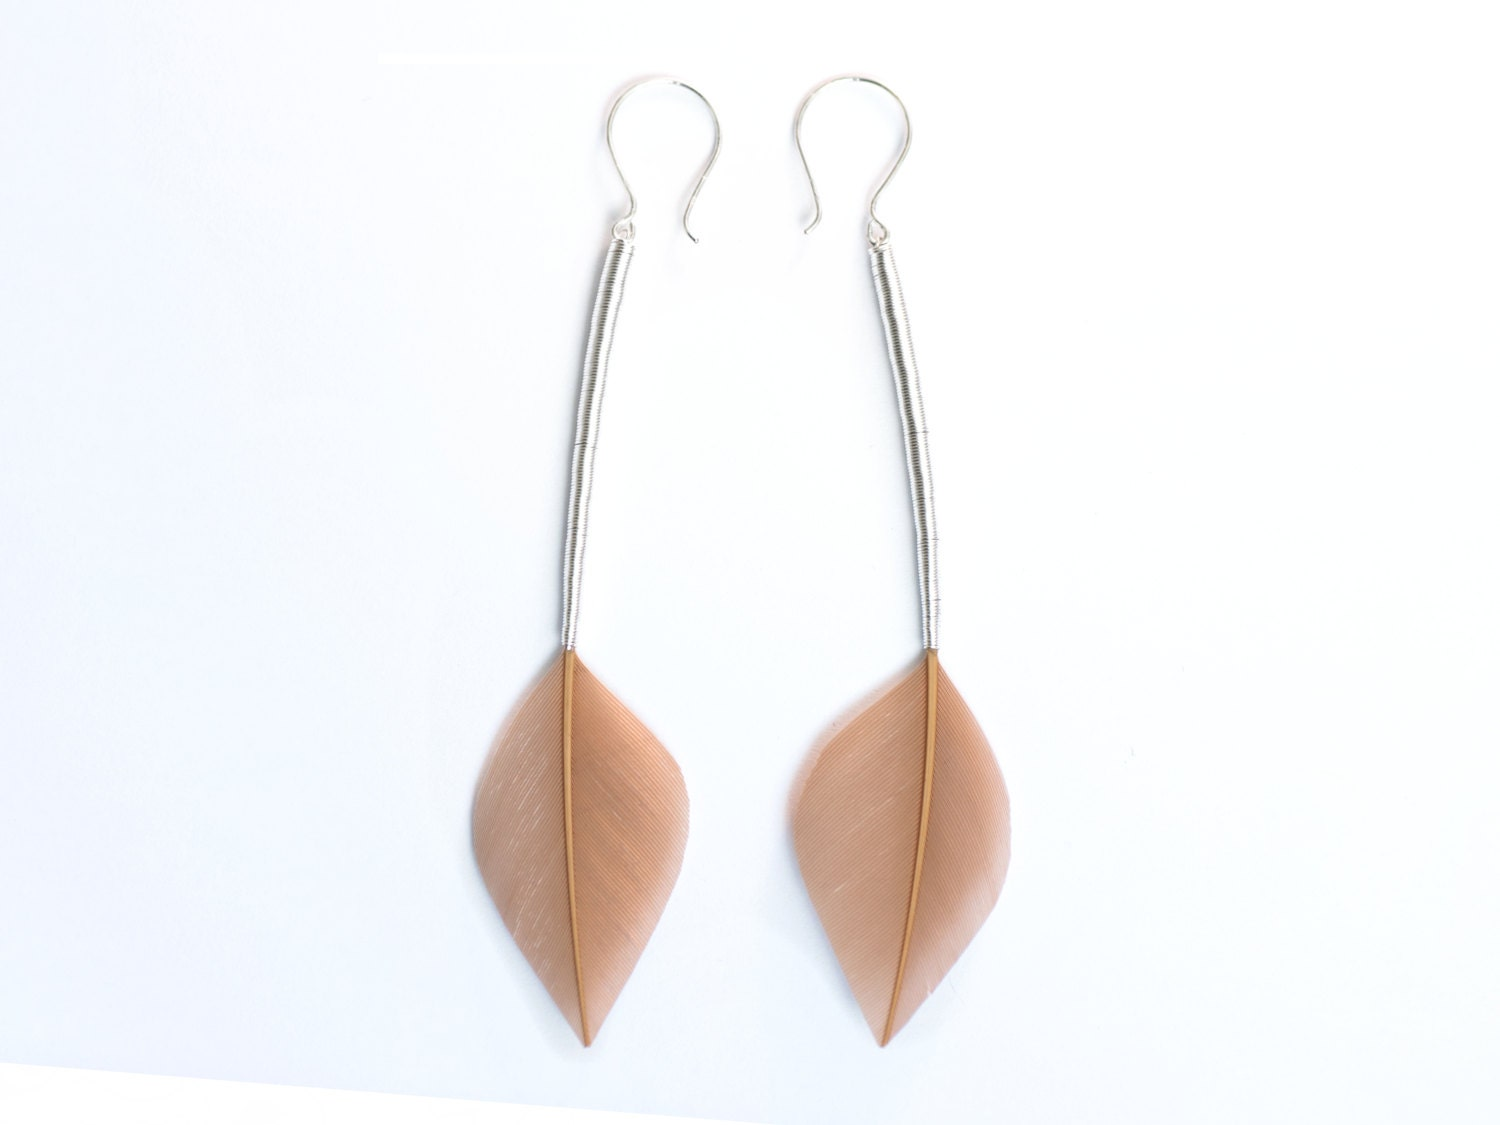 Minimalist Feather Earrings in Champagne Beige Leaf Shapes with Long Silver Stems - READY TO SHIP - Stilltreejewellery